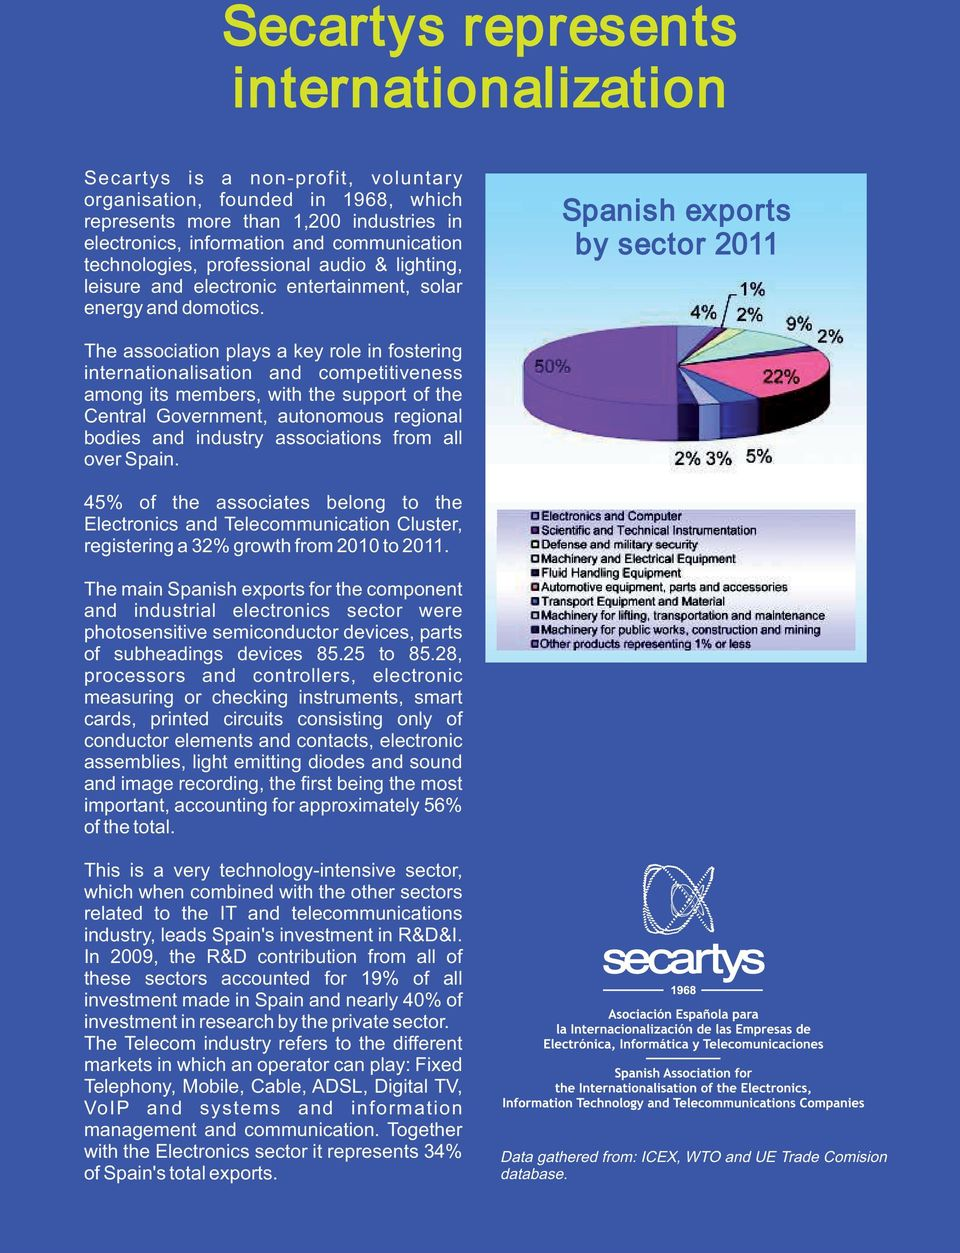 Spanish exports by sector 2011 The association plays a key role in fostering internationalisation and competitiveness among its members, with the support of the Central Government, autonomous